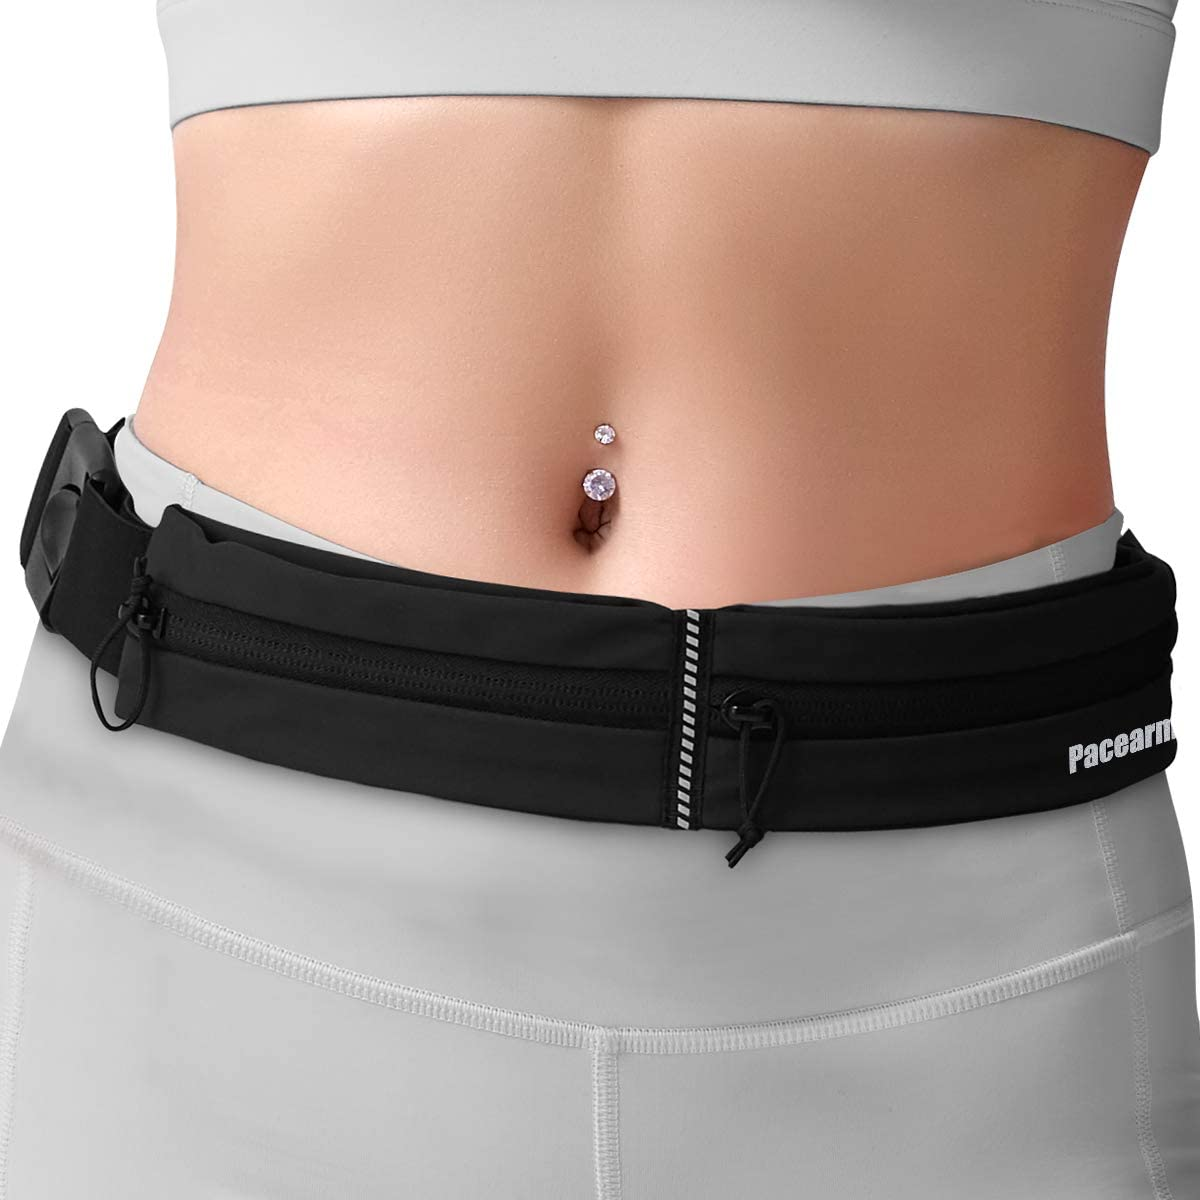 Secure And Reflective Activity Belt For Runners Hikers And Cyclist. Joggers Stretchable